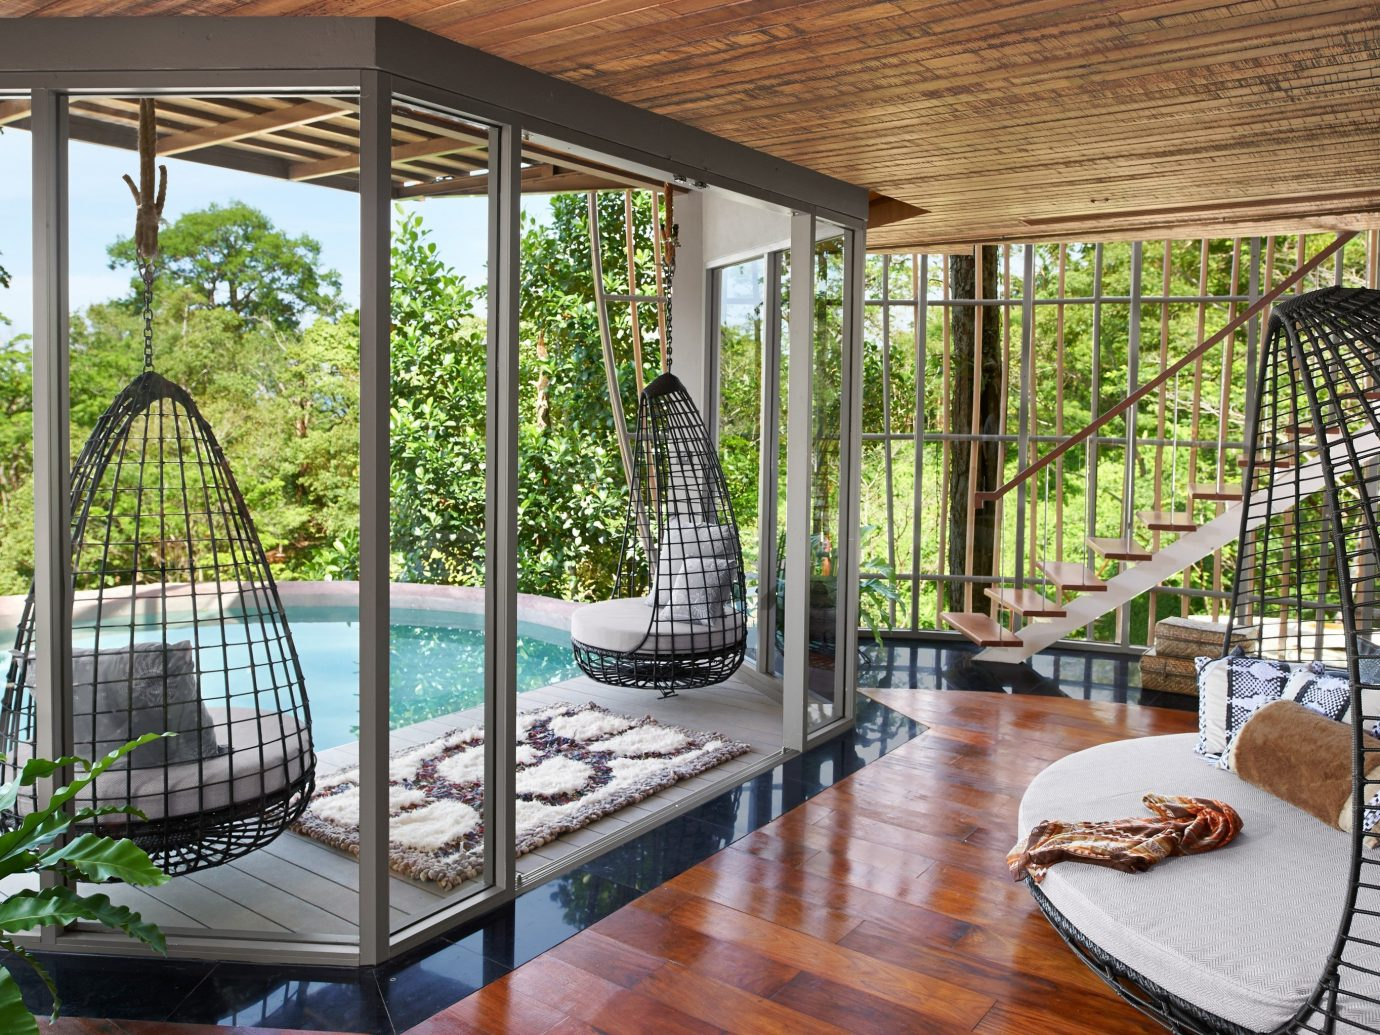 Travel Tips building table property window Living estate porch real estate outdoor structure Villa condominium backyard furniture home Courtyard Resort interior design Dining orangery mansion swimming pool area wood